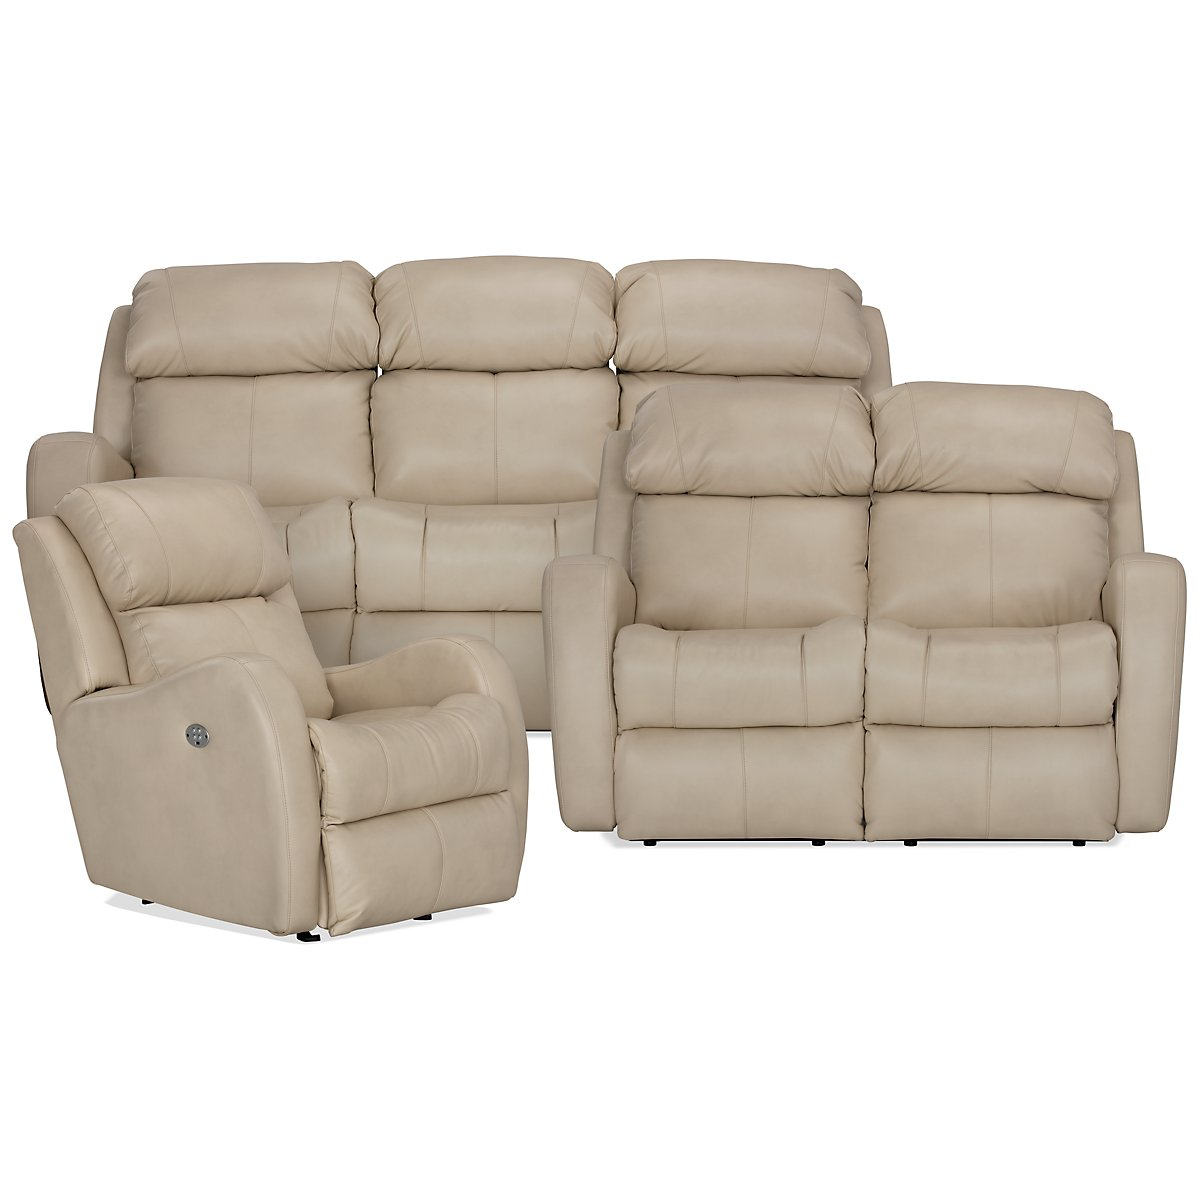 City Furniture Finn Lt Beige Microfiber Power Rocker Recliner